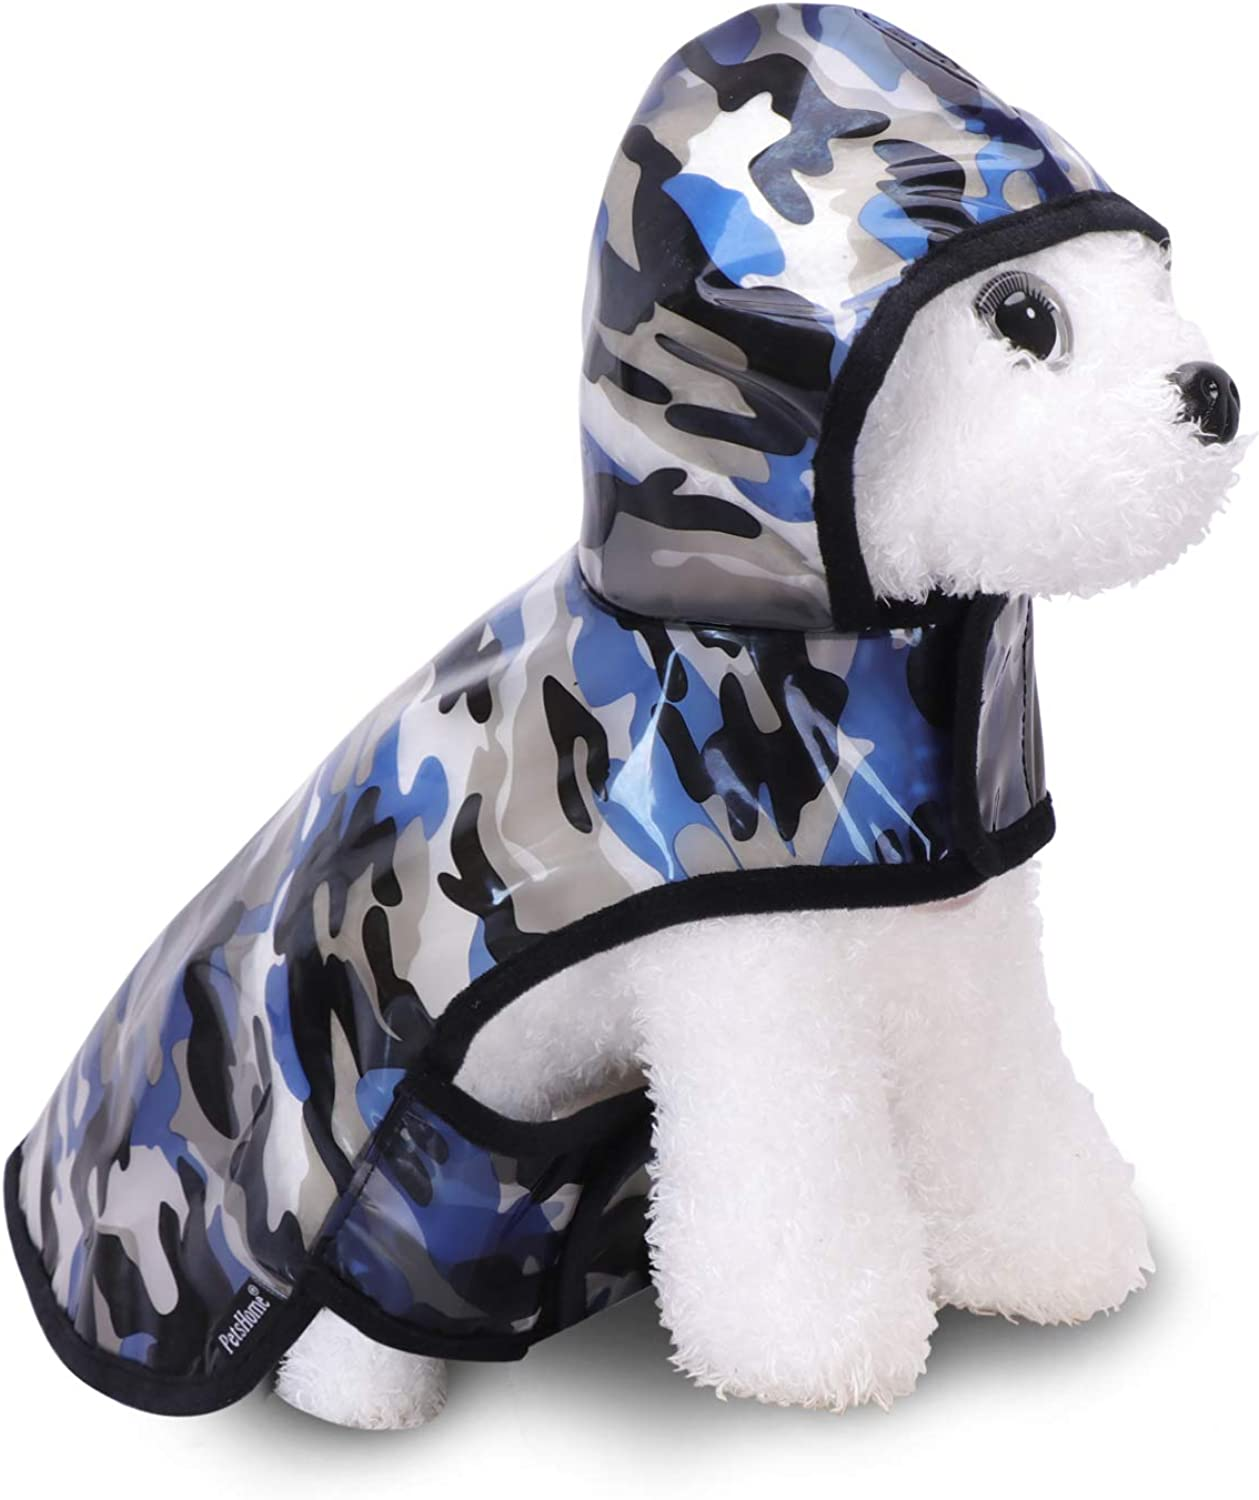 PetsHome Dog Raincoat, Cat Raincoat, Fashion Waterproof Lightweight Puppy Rain Jacket for Small Dog and Cat Small Camouflage bluee